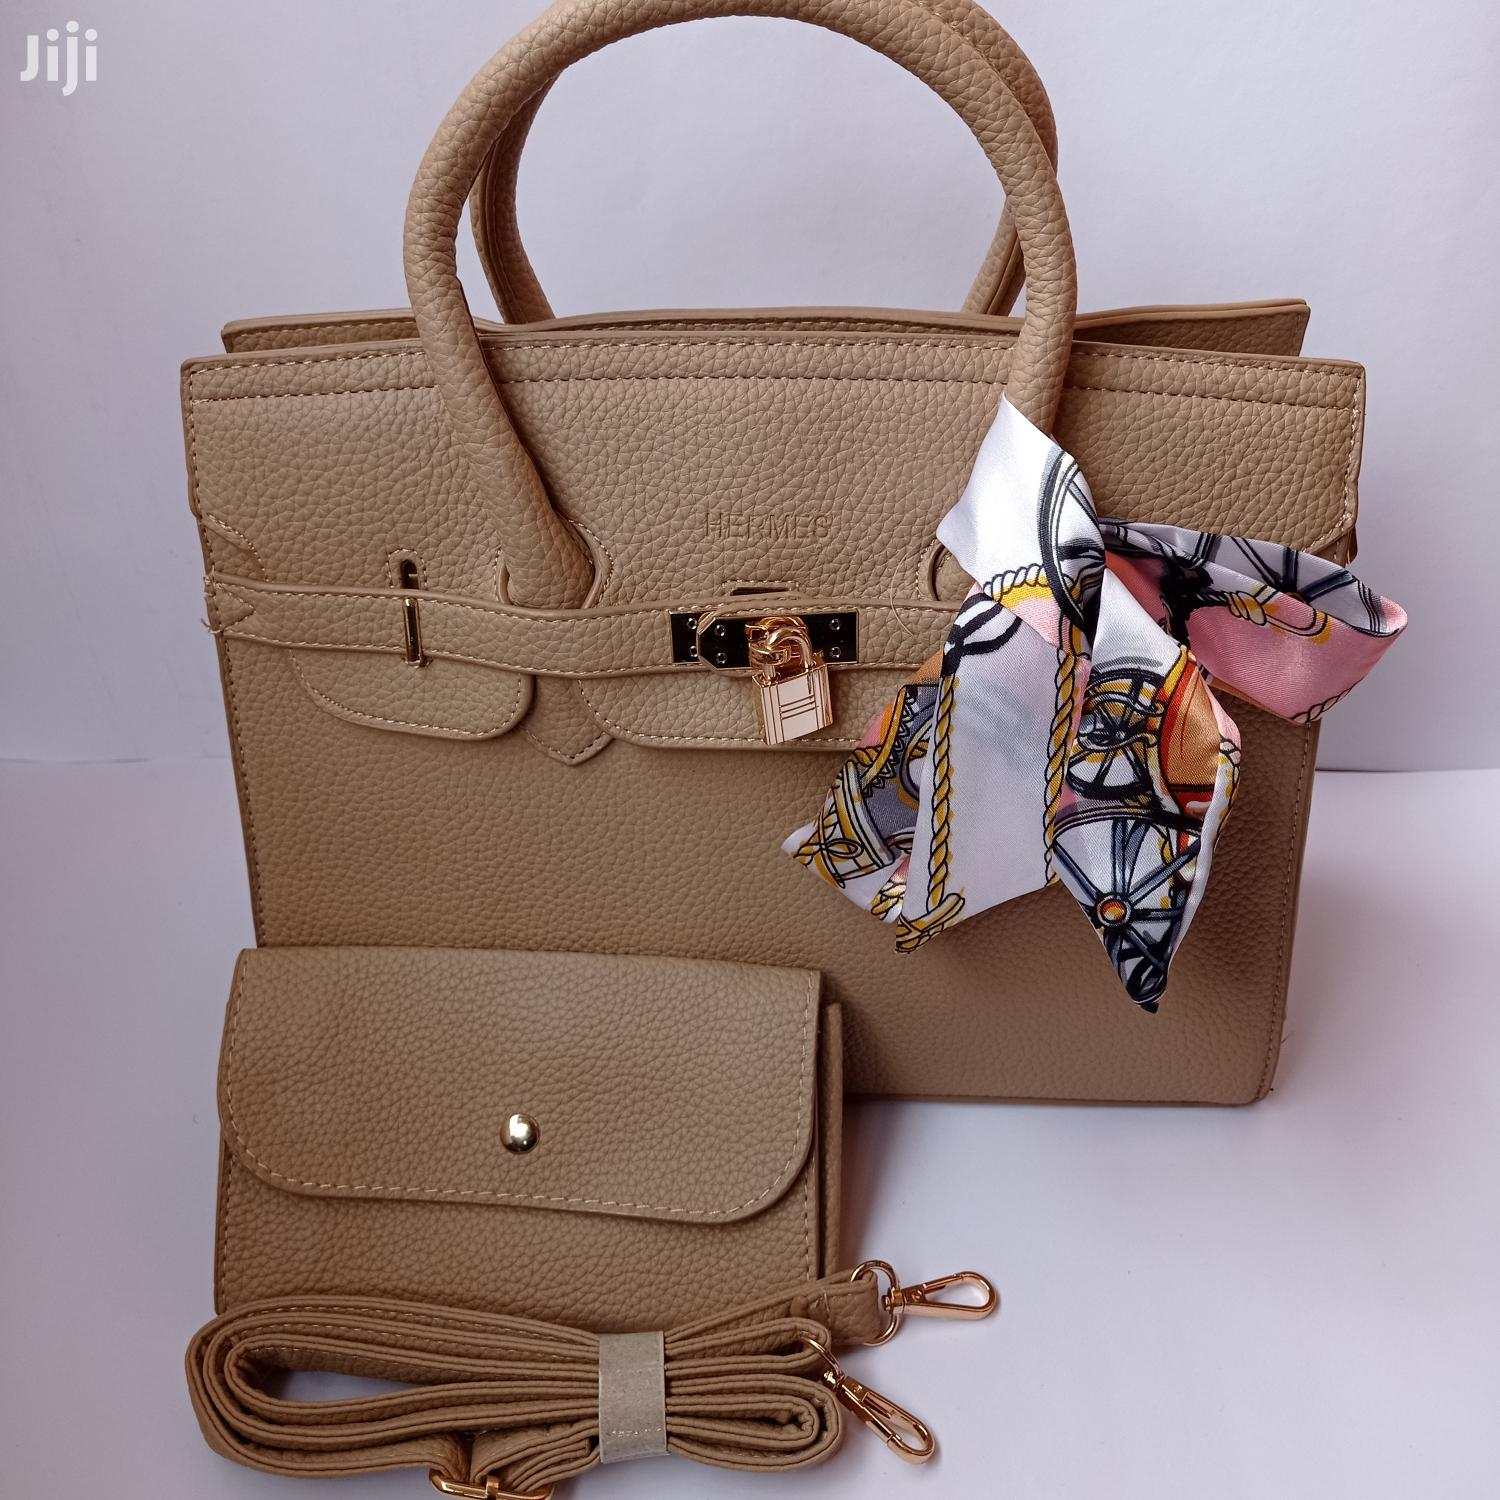 Beige Handbags With a Silk Scarf Available